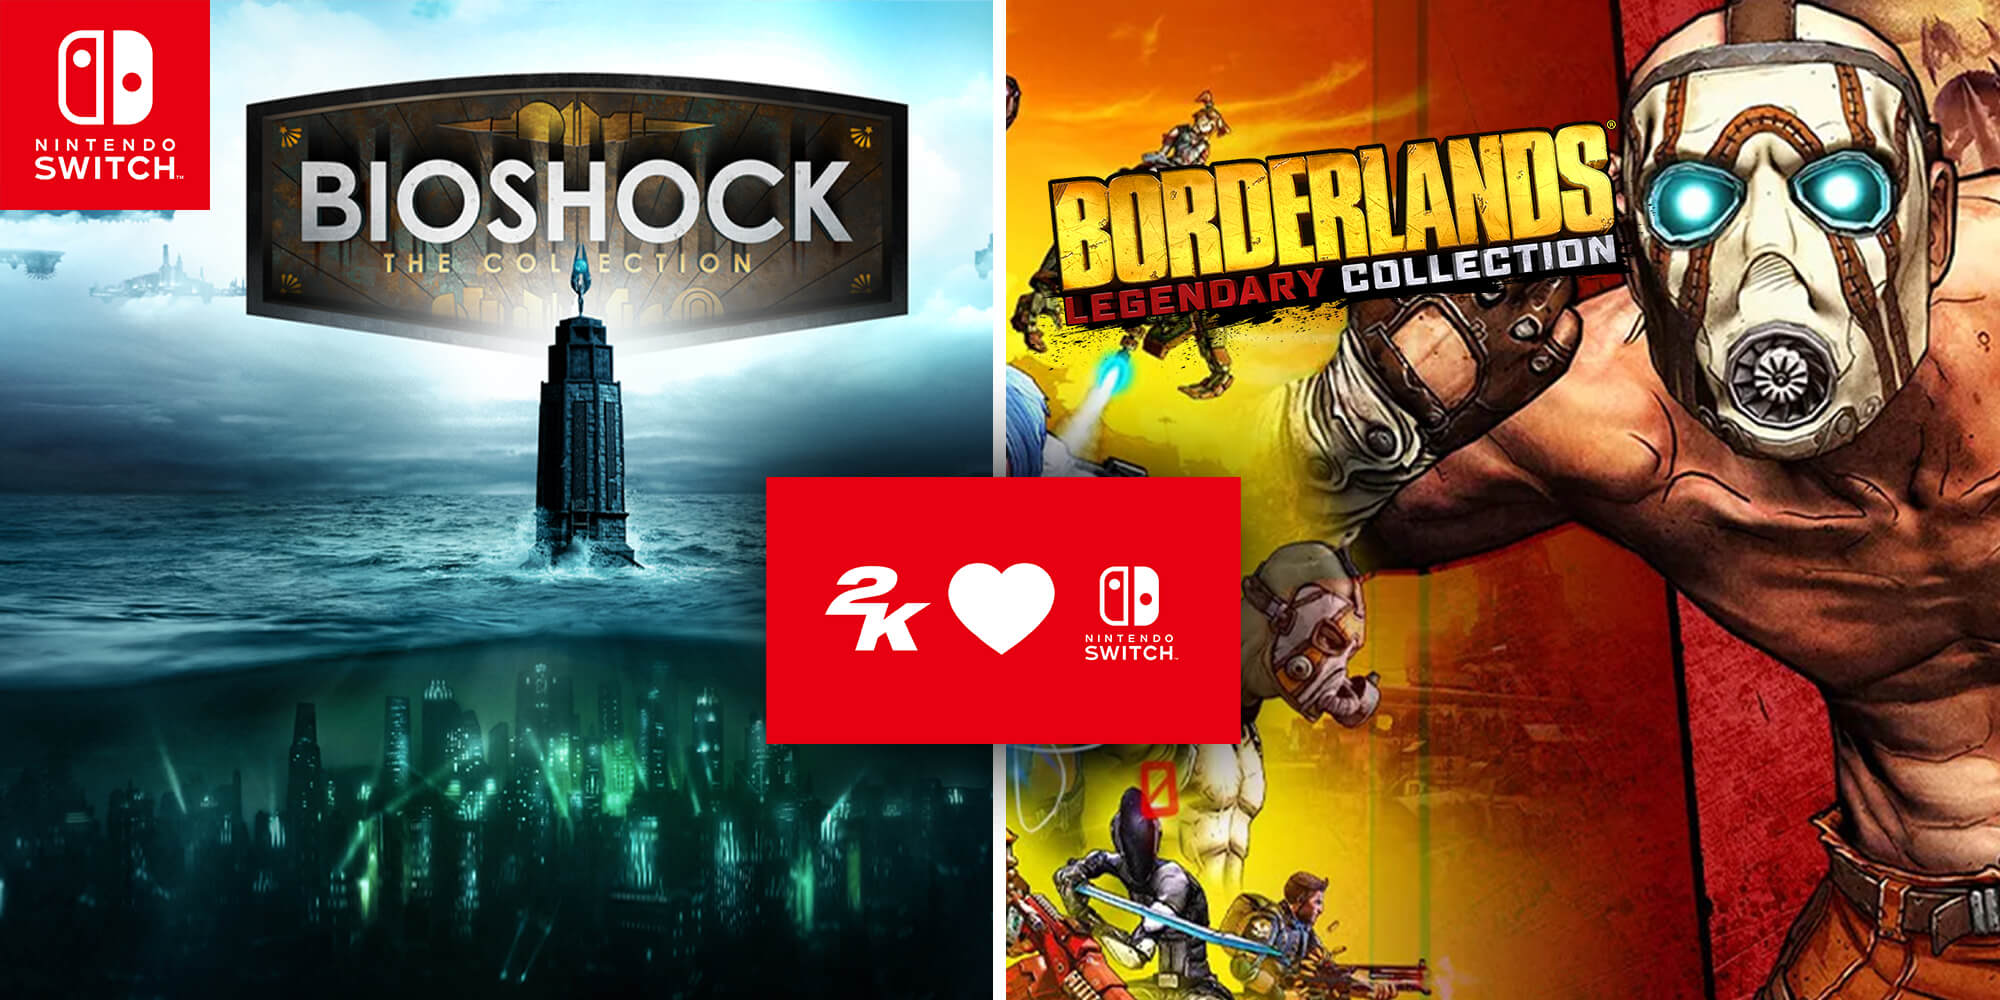 2K | BioShock: The Collection and Borderlands Legendary Collection